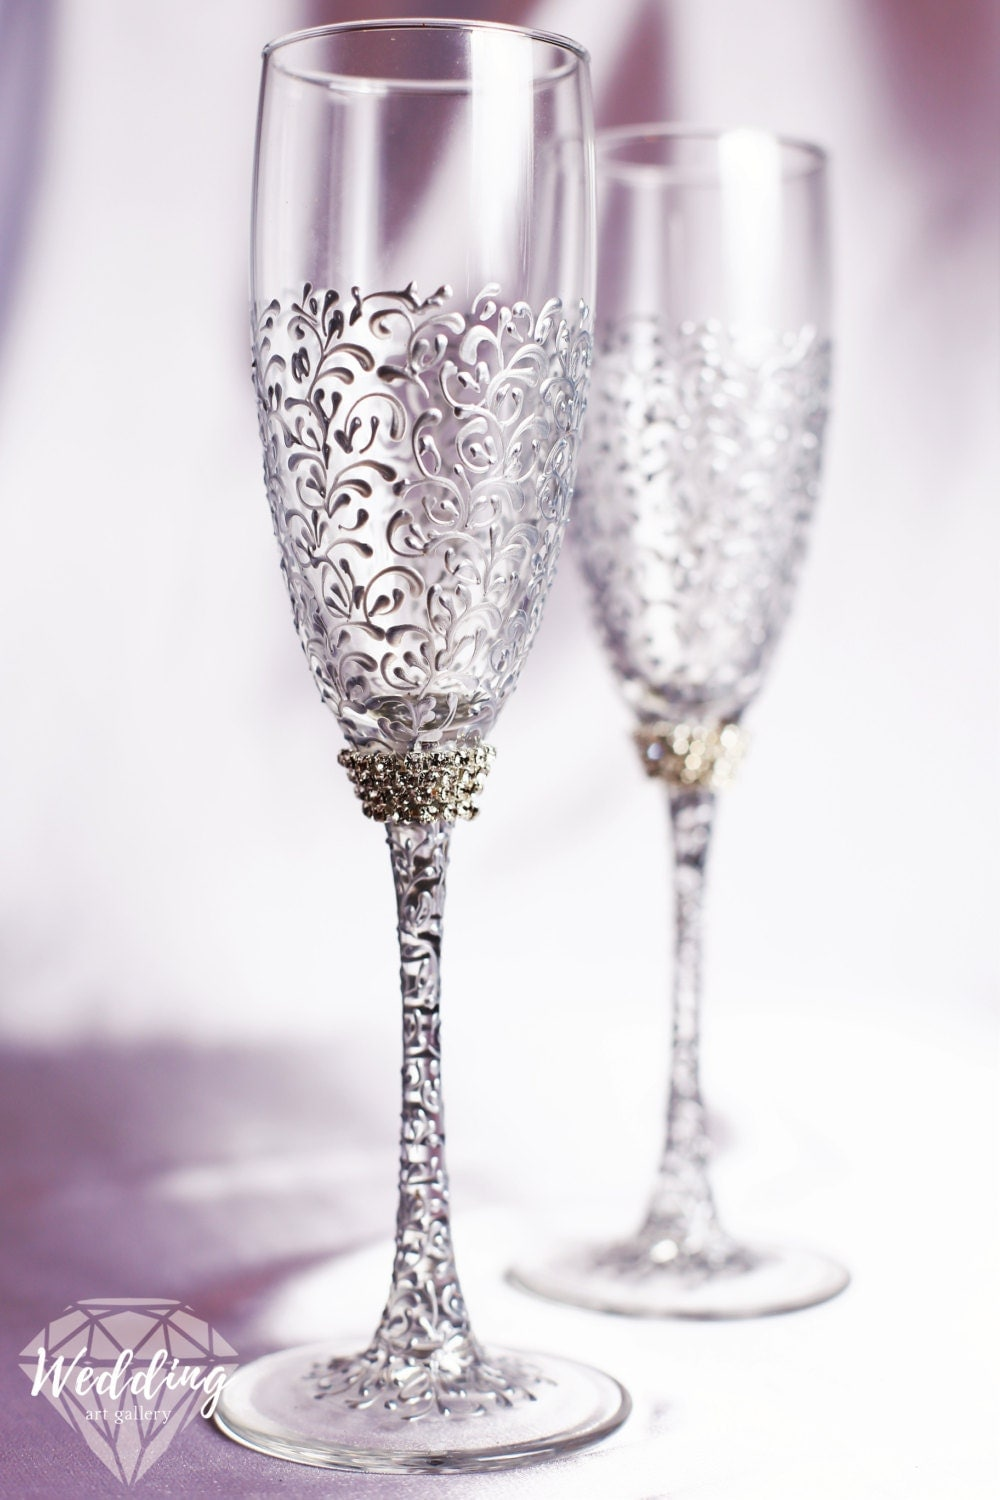 Wedding silver glasses champagne flutes silver wedding for Wedding champagne flutes